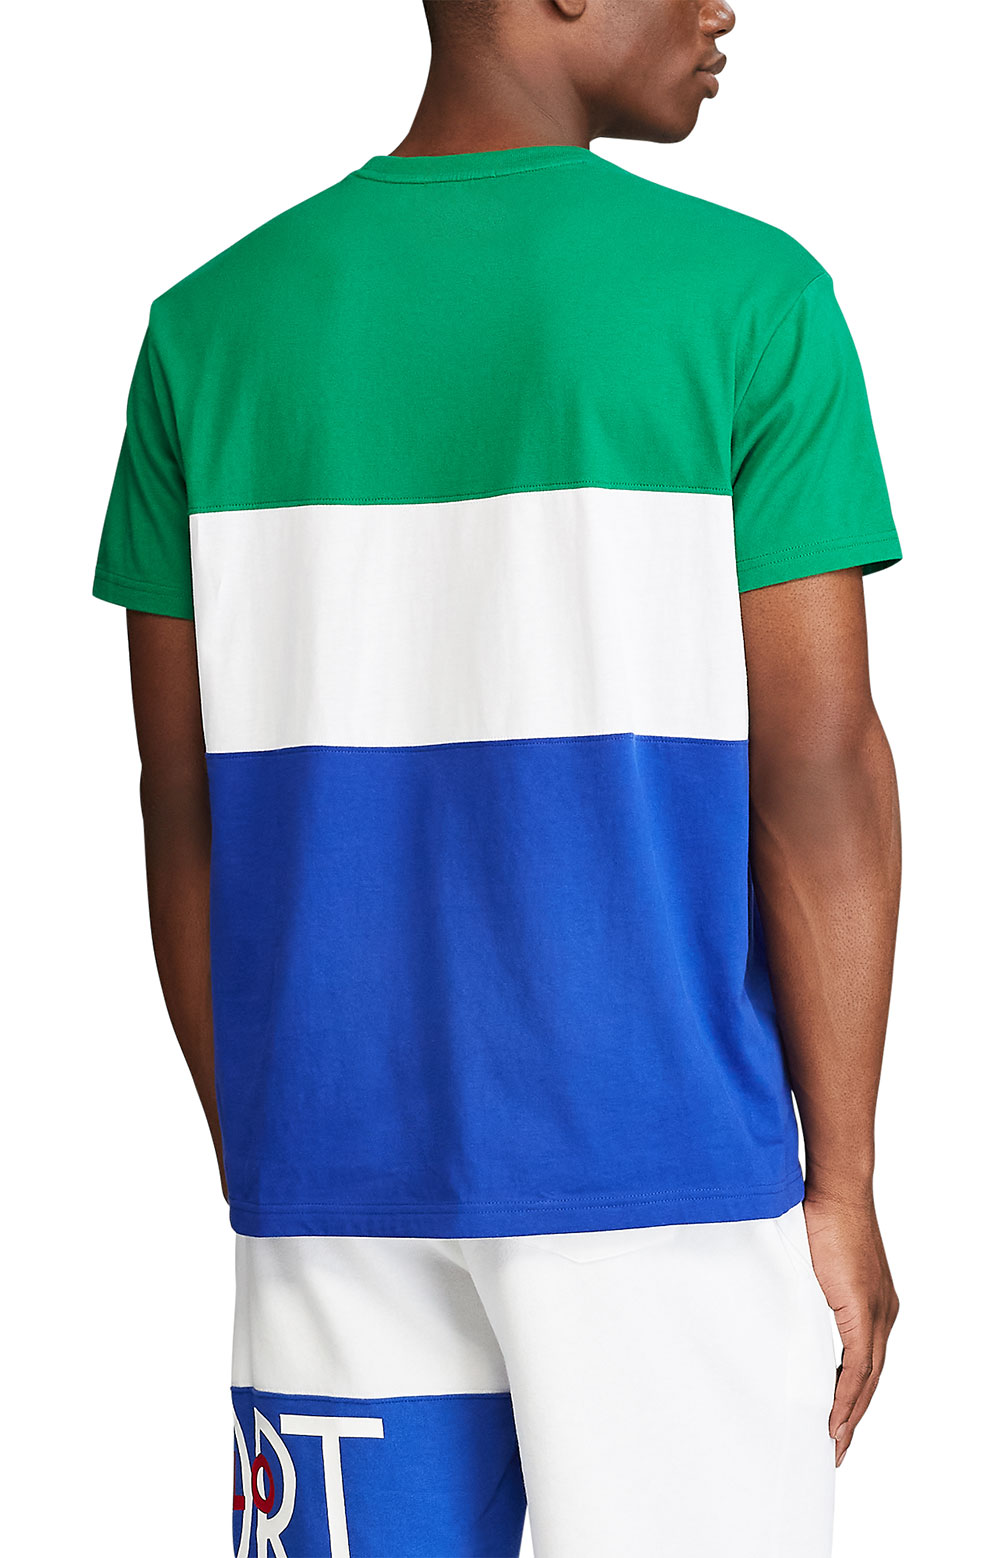 Classic Fit Polo Sport T-Shirt - Kayak Green  3